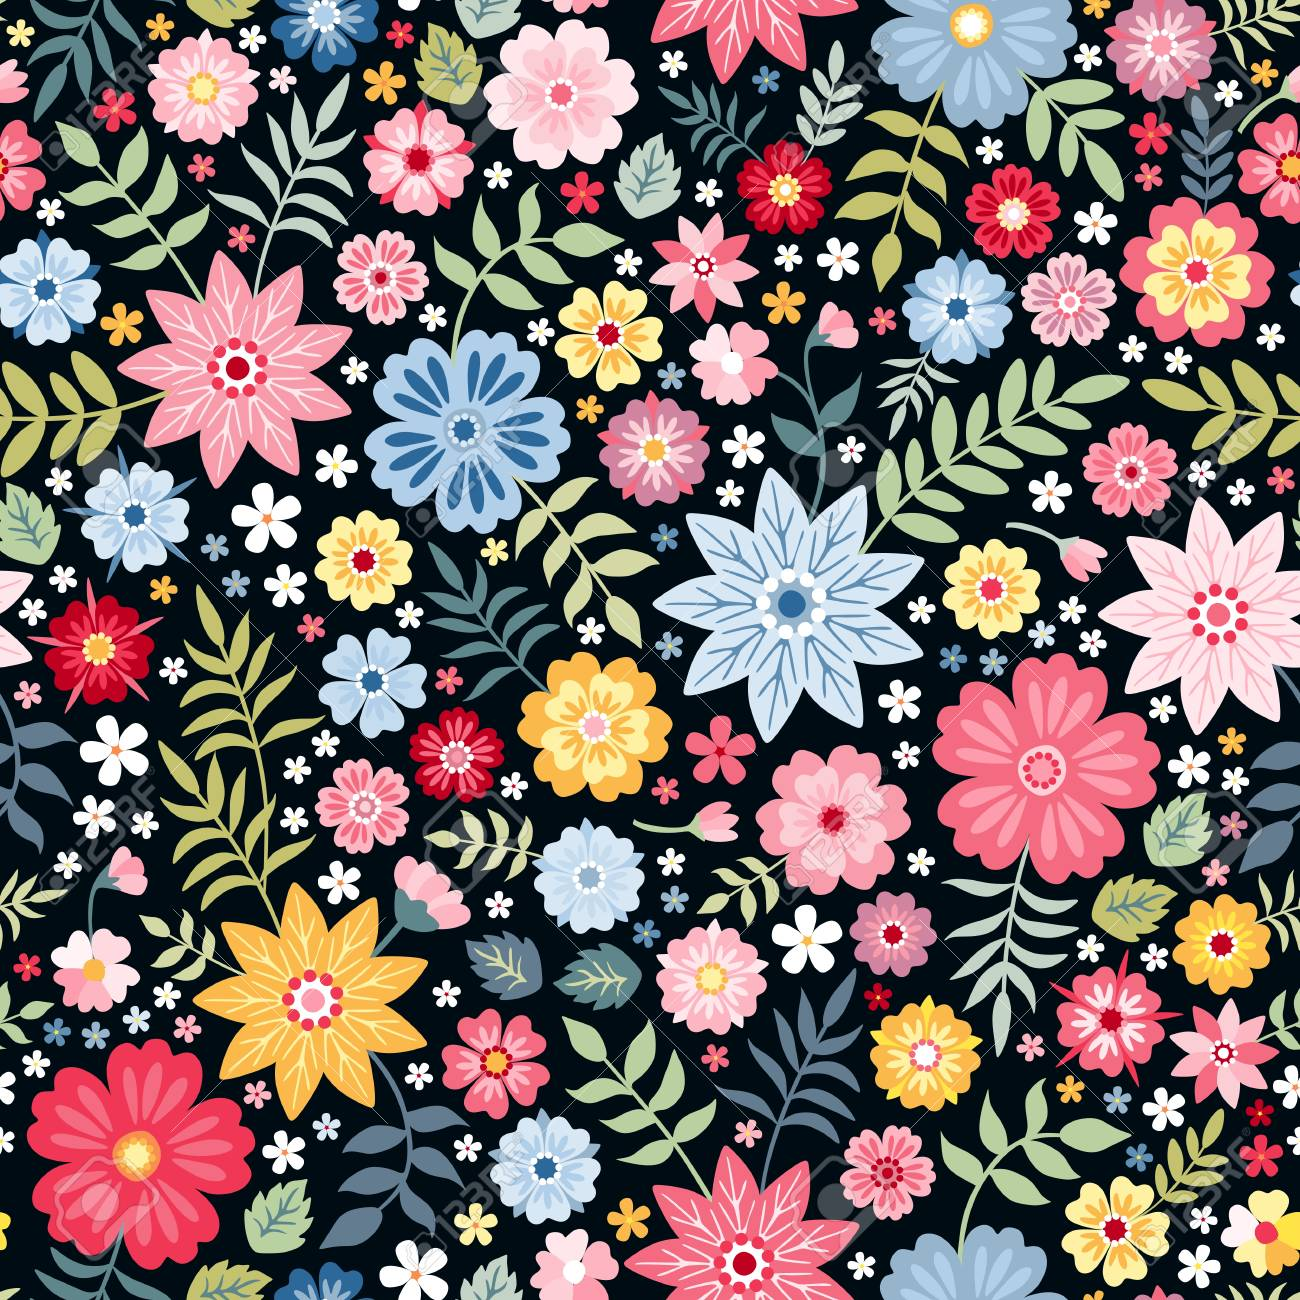 Seamless ditsy floral pattern with fantasy little flowers and leaves in folk style. Vector illustration. Print for fabric, paper, wallpaper, wrapping design. - 108438746